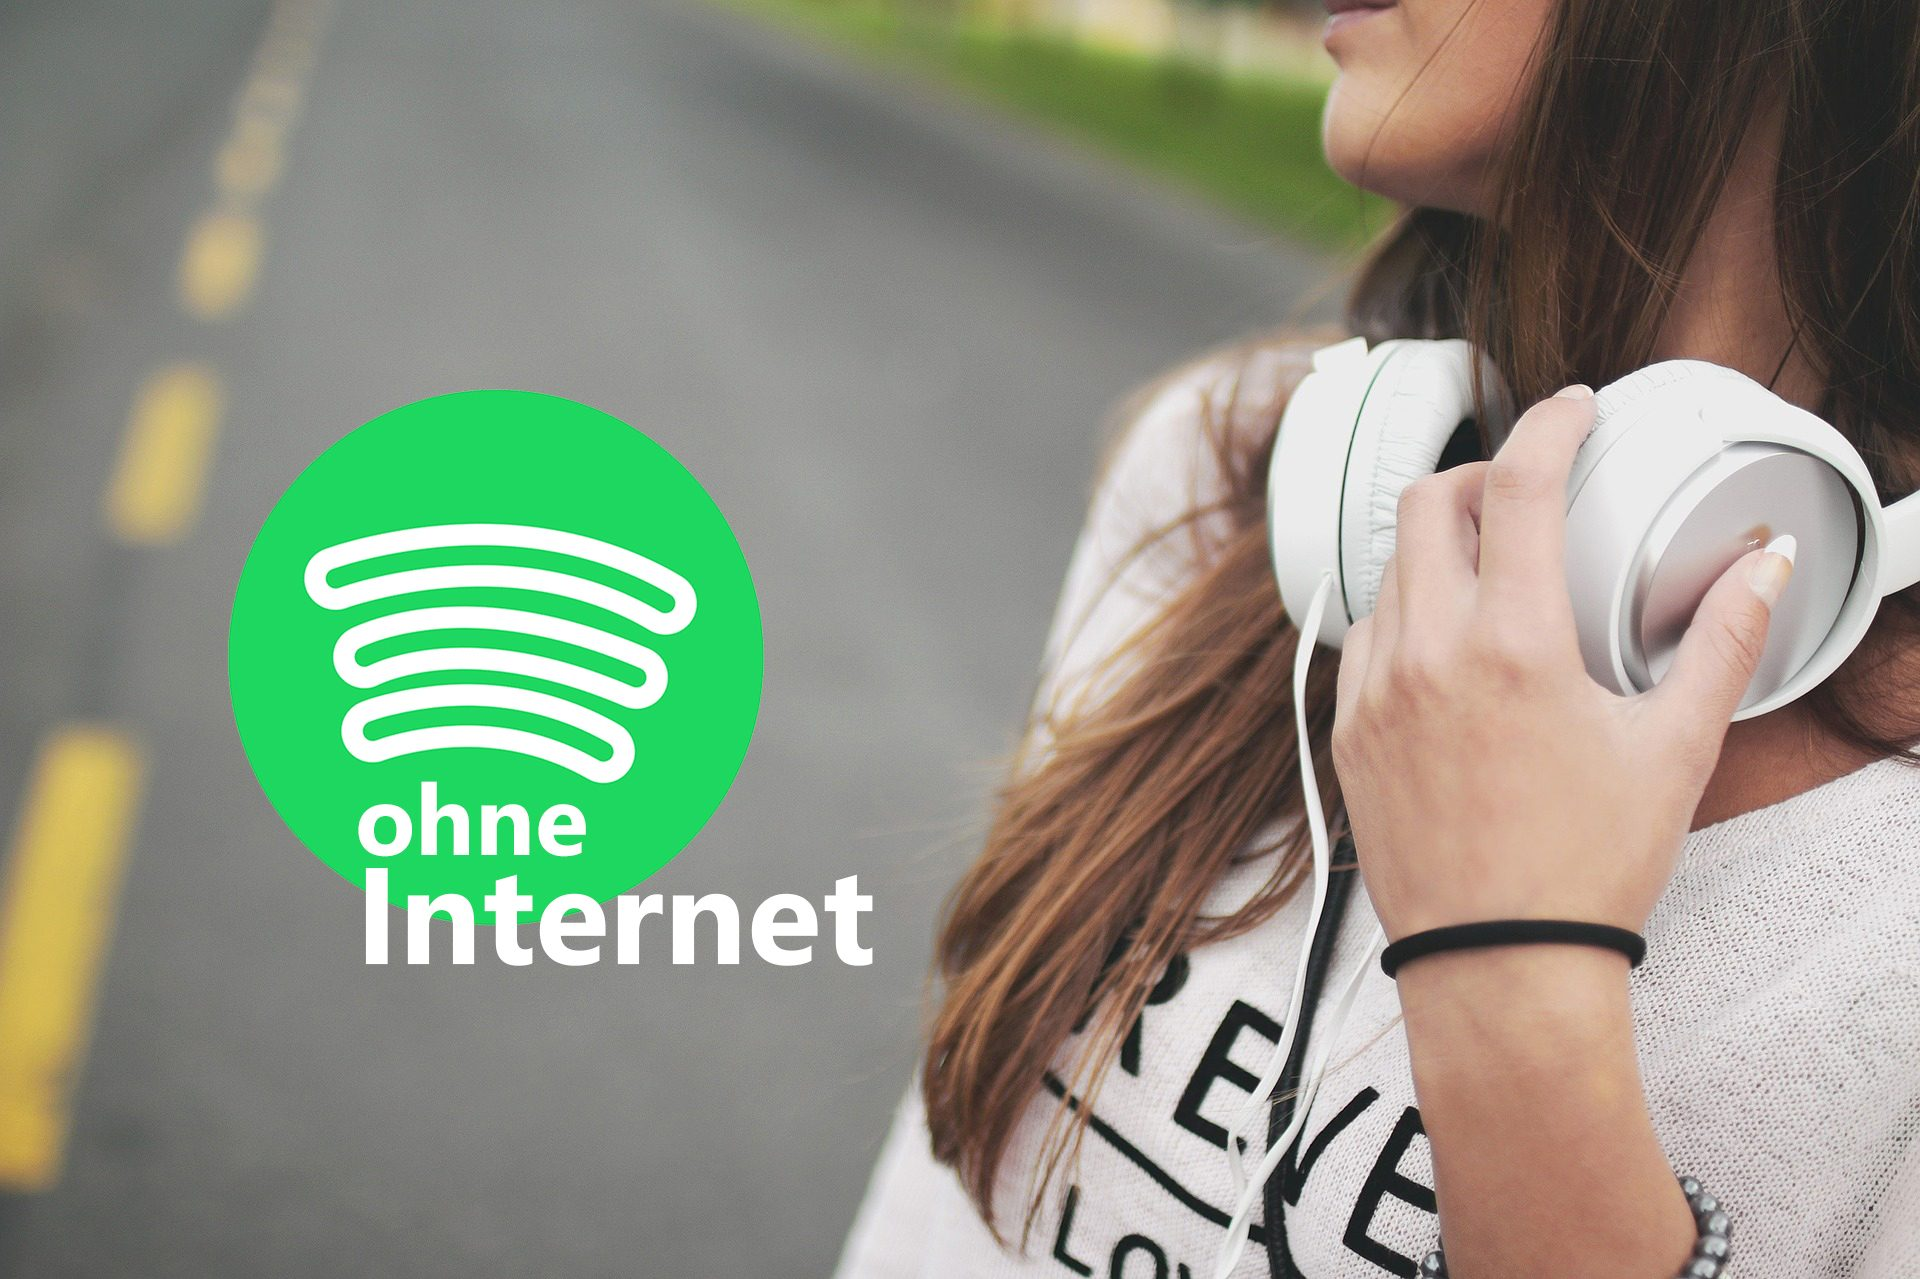 musik download für iphone ohne internet